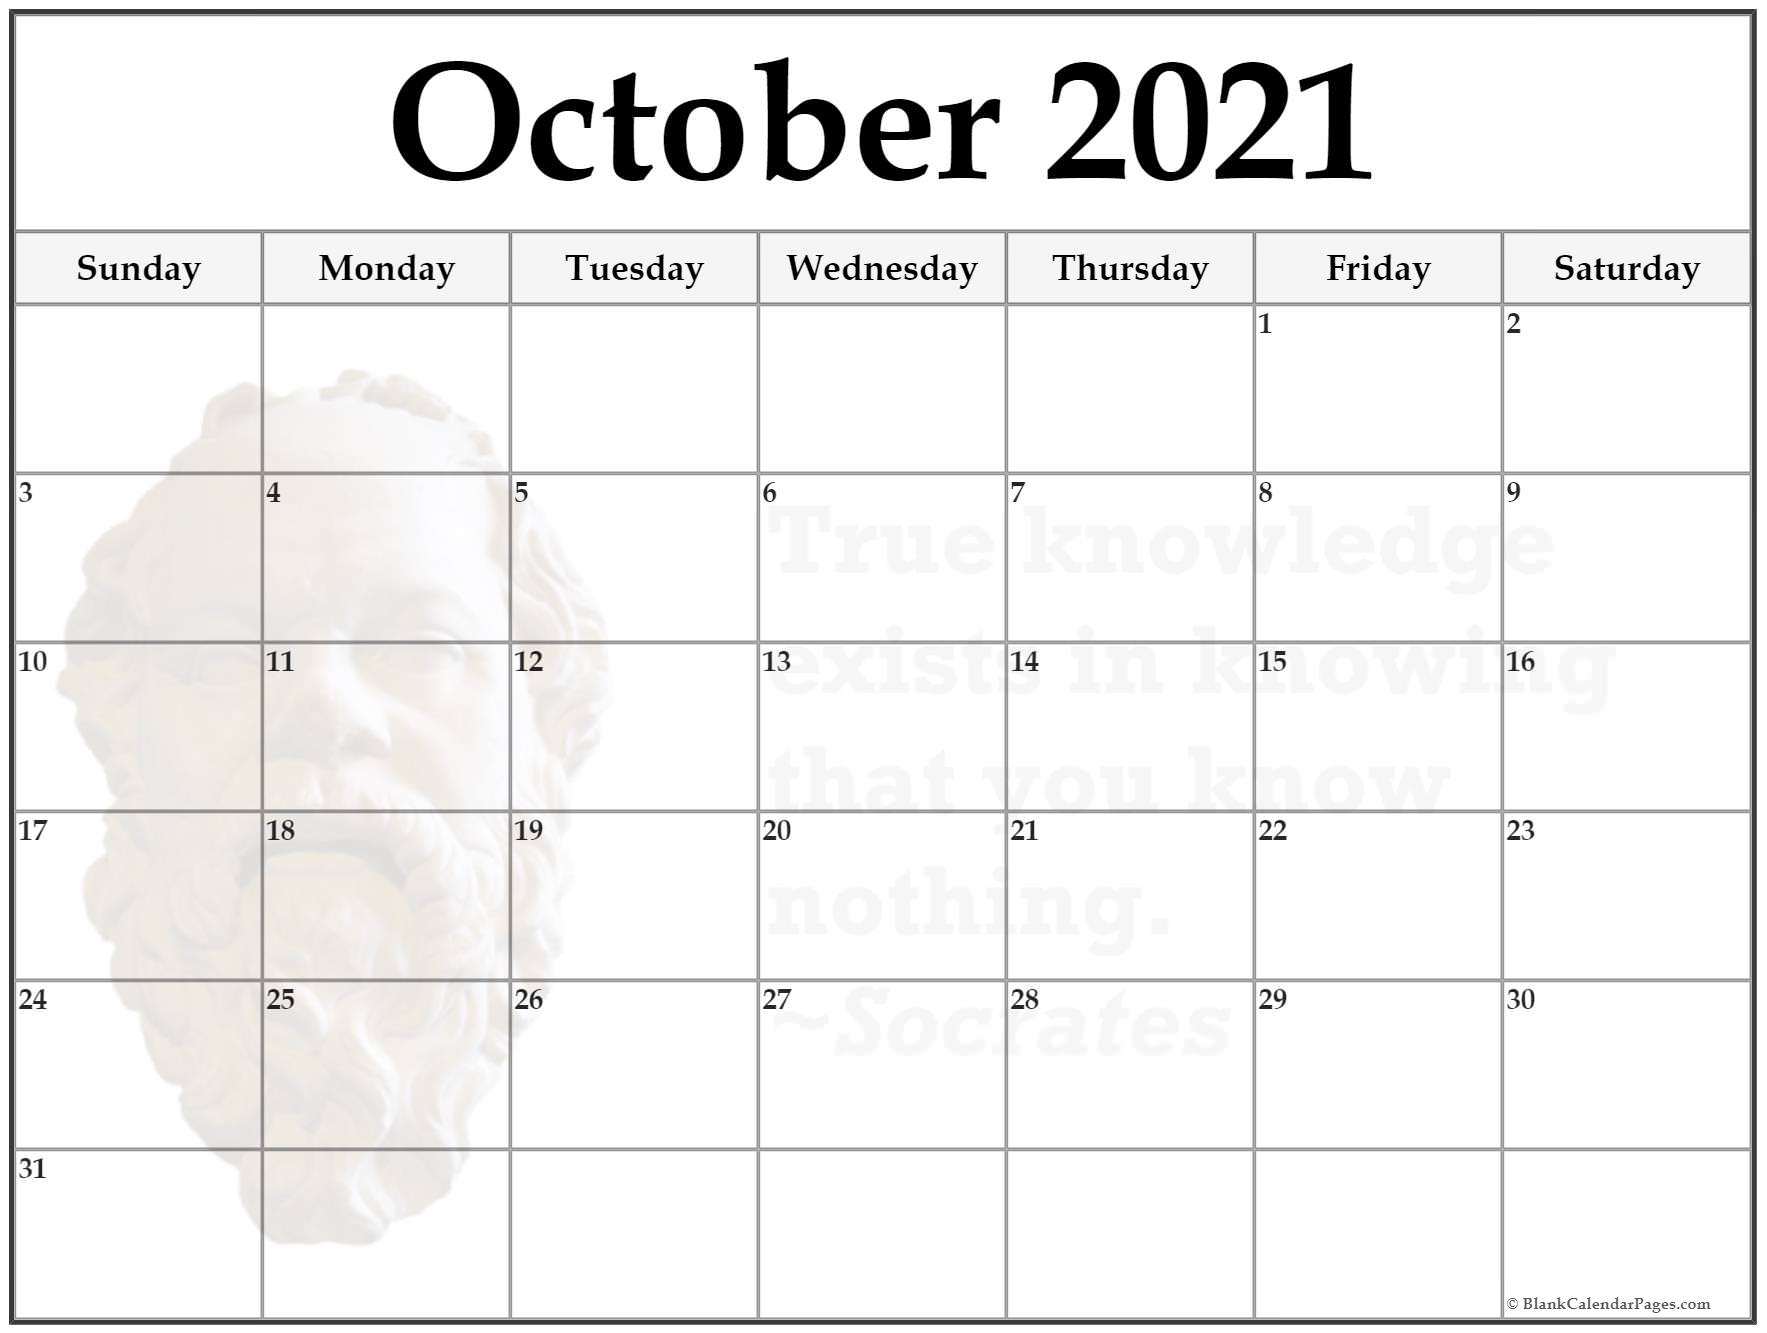 October 2019 monthly quote calendar template. True knowledge exists in knowing that you know nothing. ~Socrates